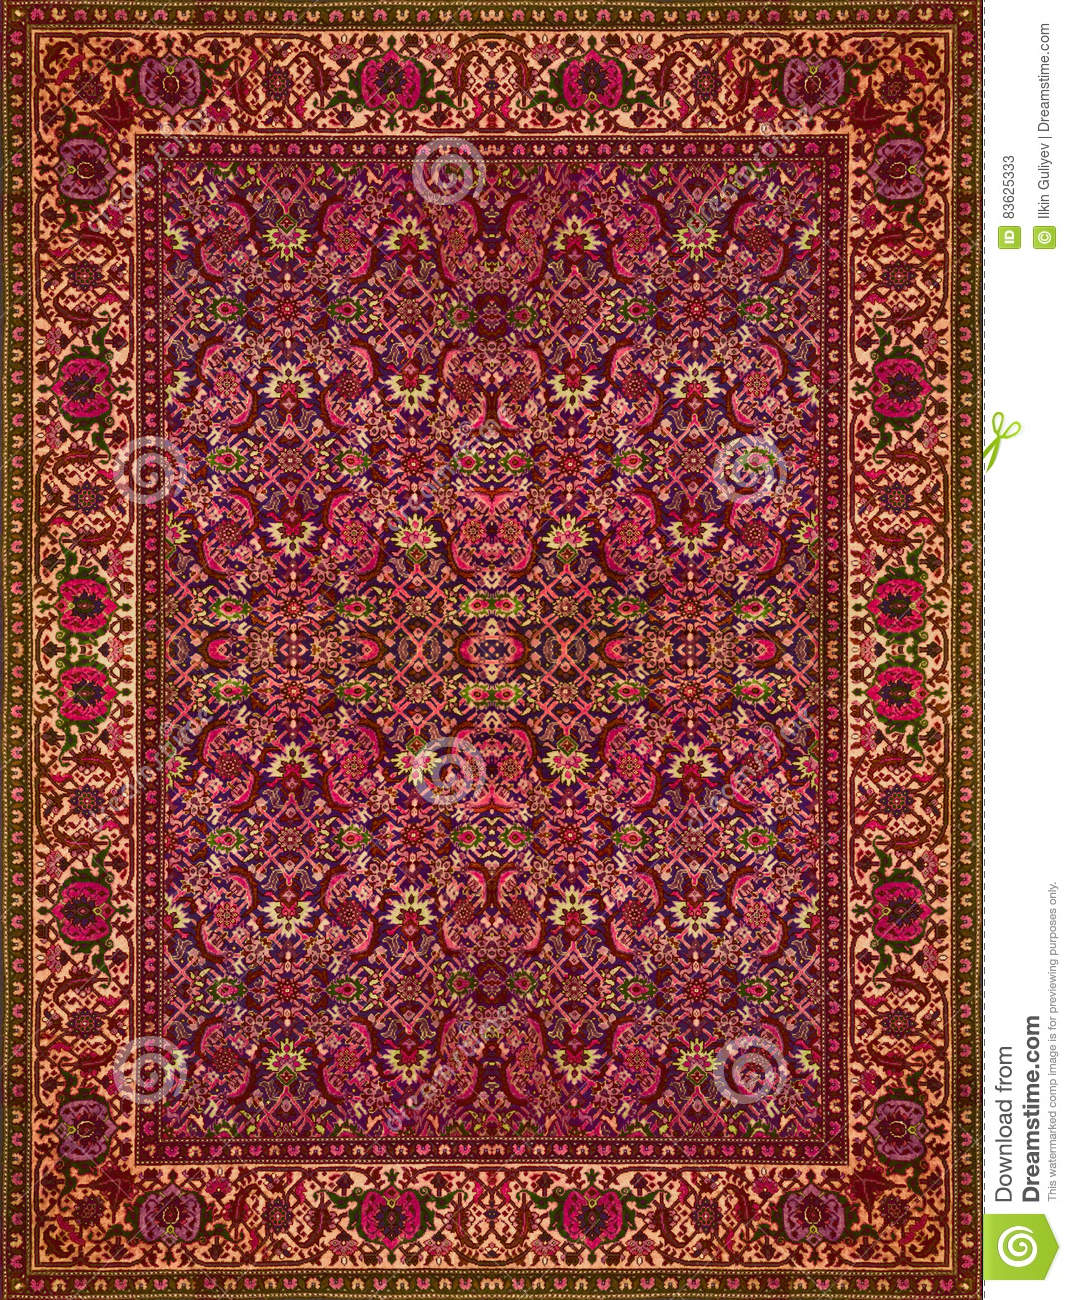 Red Carpet Texture Pattern: Persian Carpet Texture, Abstract Ornament. Round Mandala